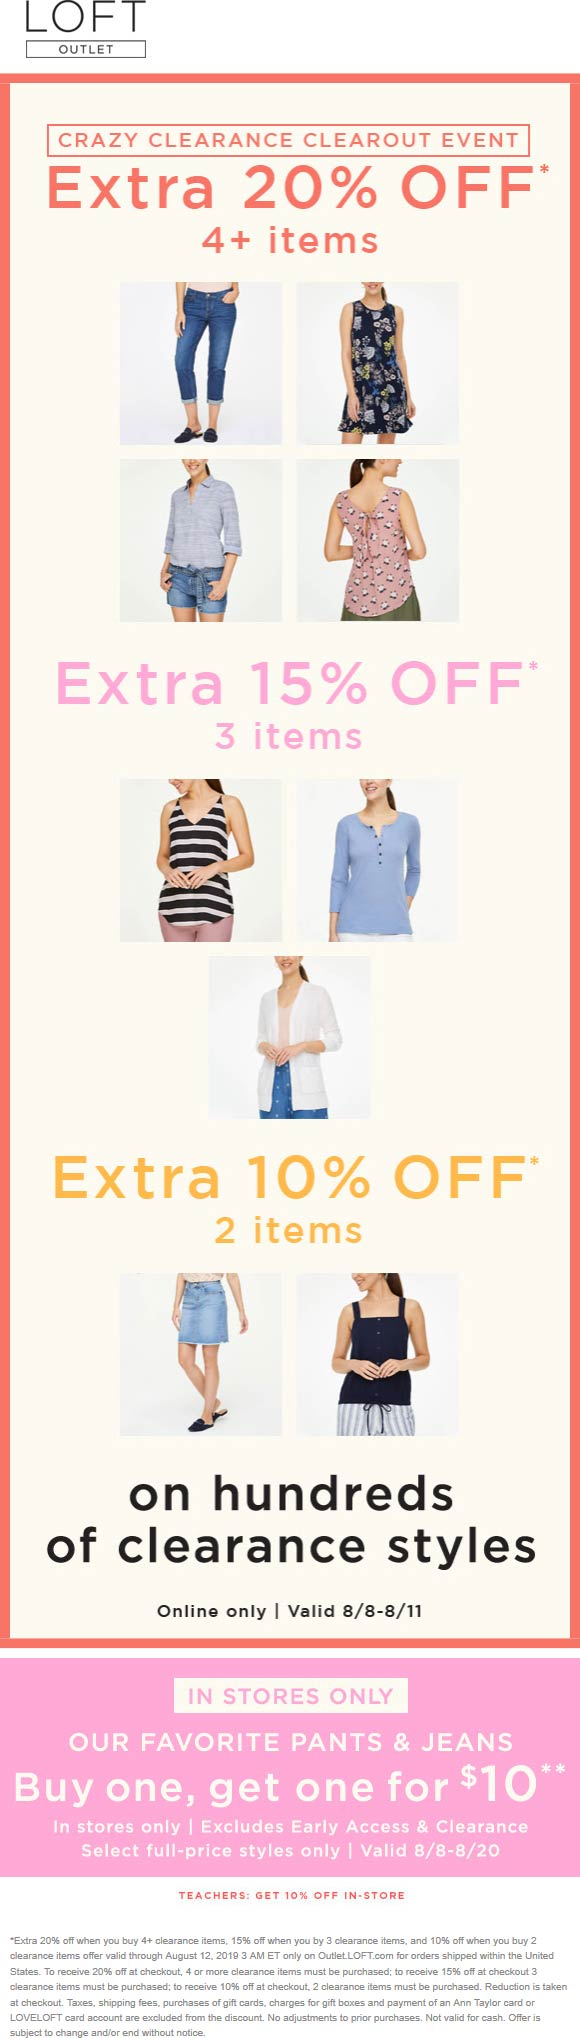 LOFT Outlet Coupon February 2020 Extra 20% off clearance online at LOFT Outlet